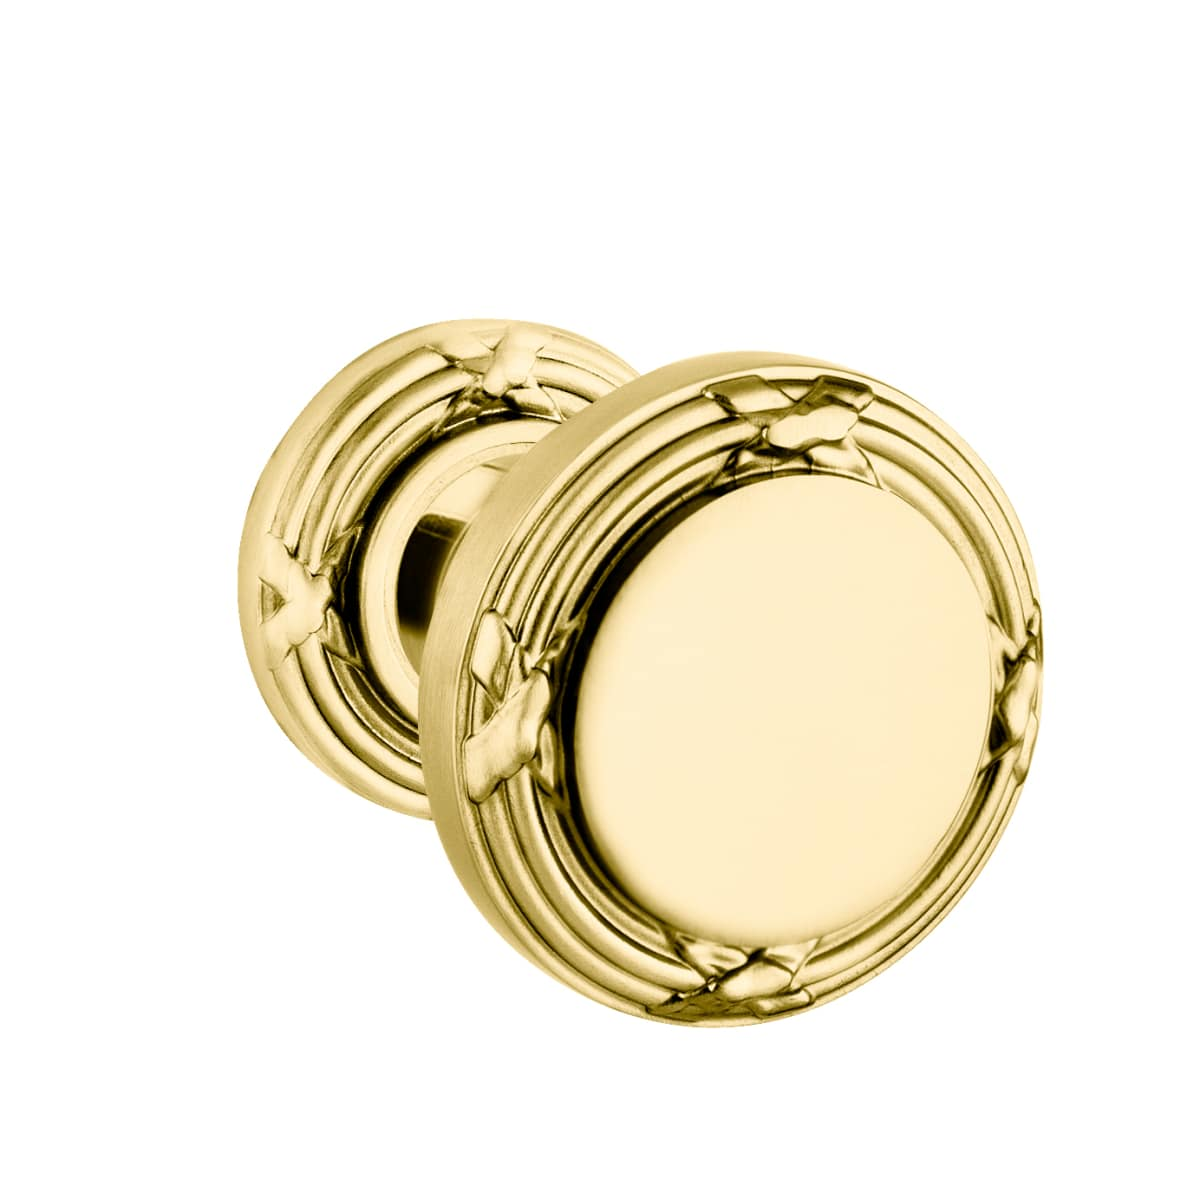 Baldwin 5013 Style Passage Door Knob Set with choice of Small Rosette from the Estate Collection